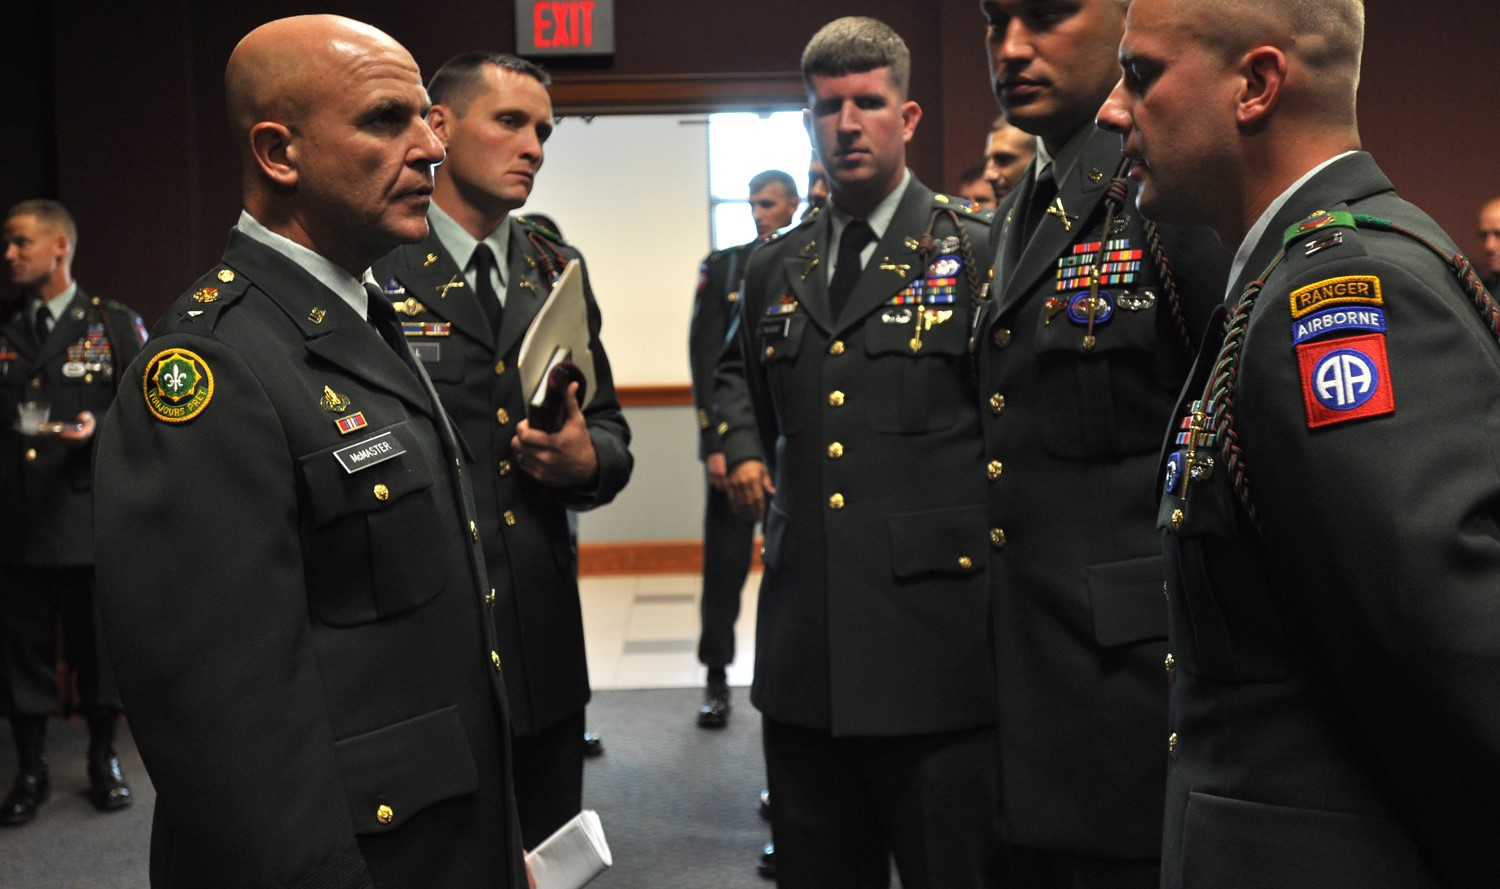 McMaster speaking with officers from the 82nd Airborne Division, 2009 (Photo: Wikimedia/United States Army)